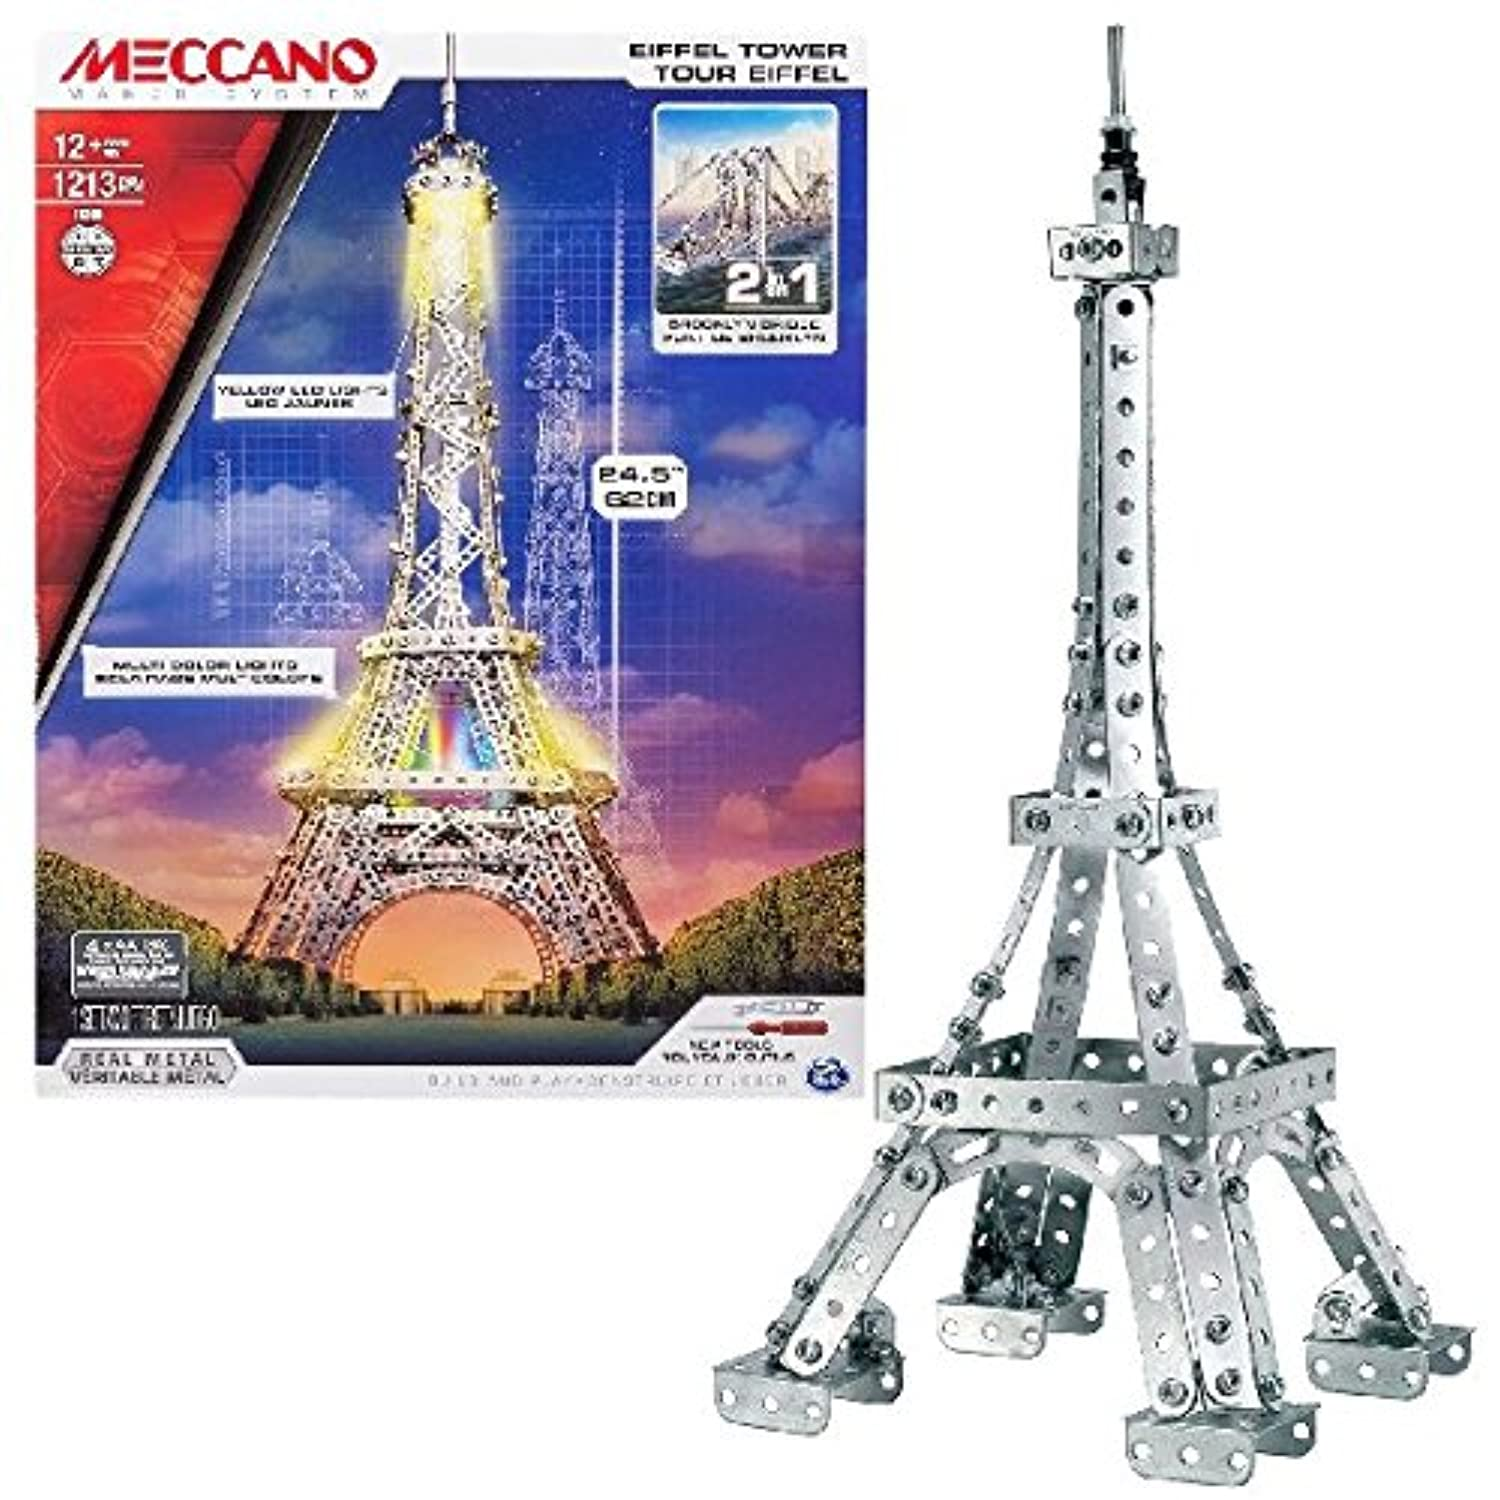 Meccano Eiffel Tower Construction Set